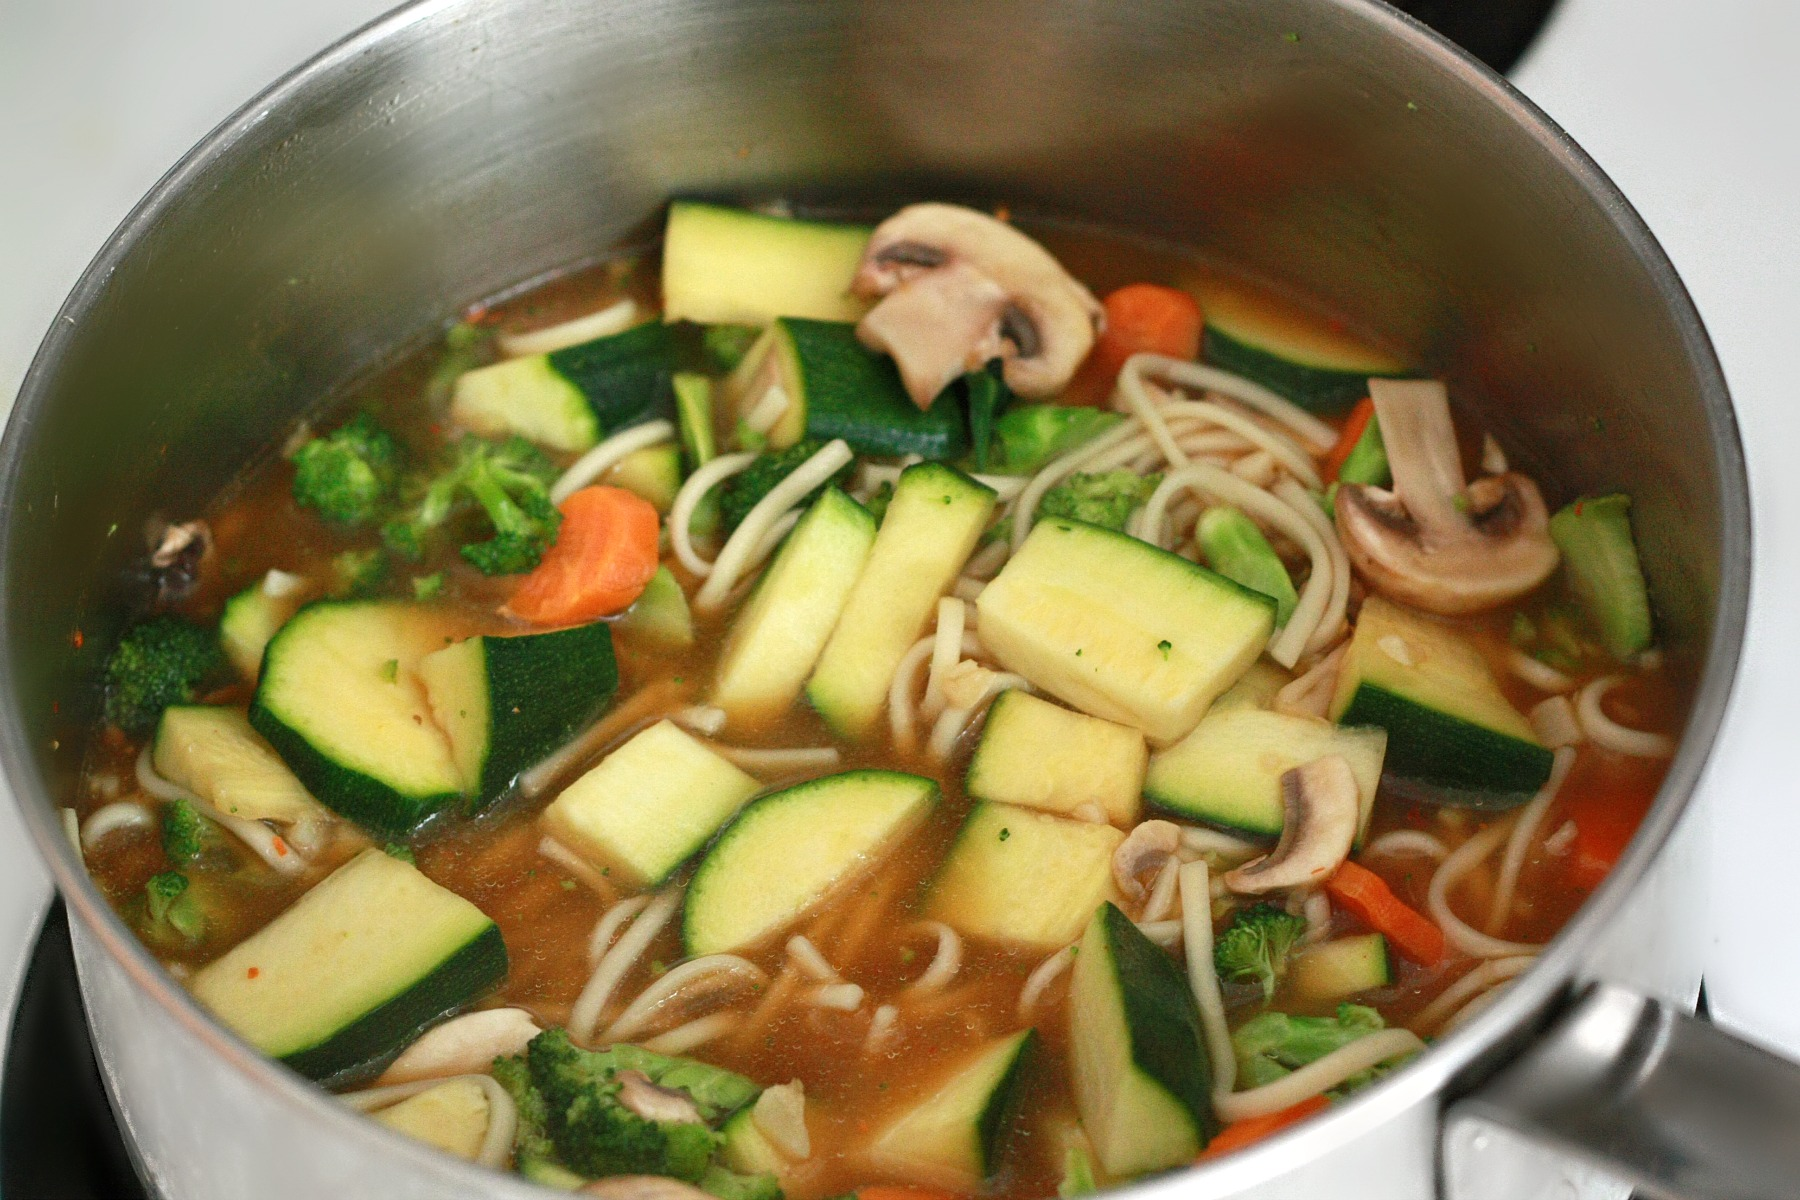 File:Vegetable udon noodle soup.jpg - Wikipedia, the free encyclopedia